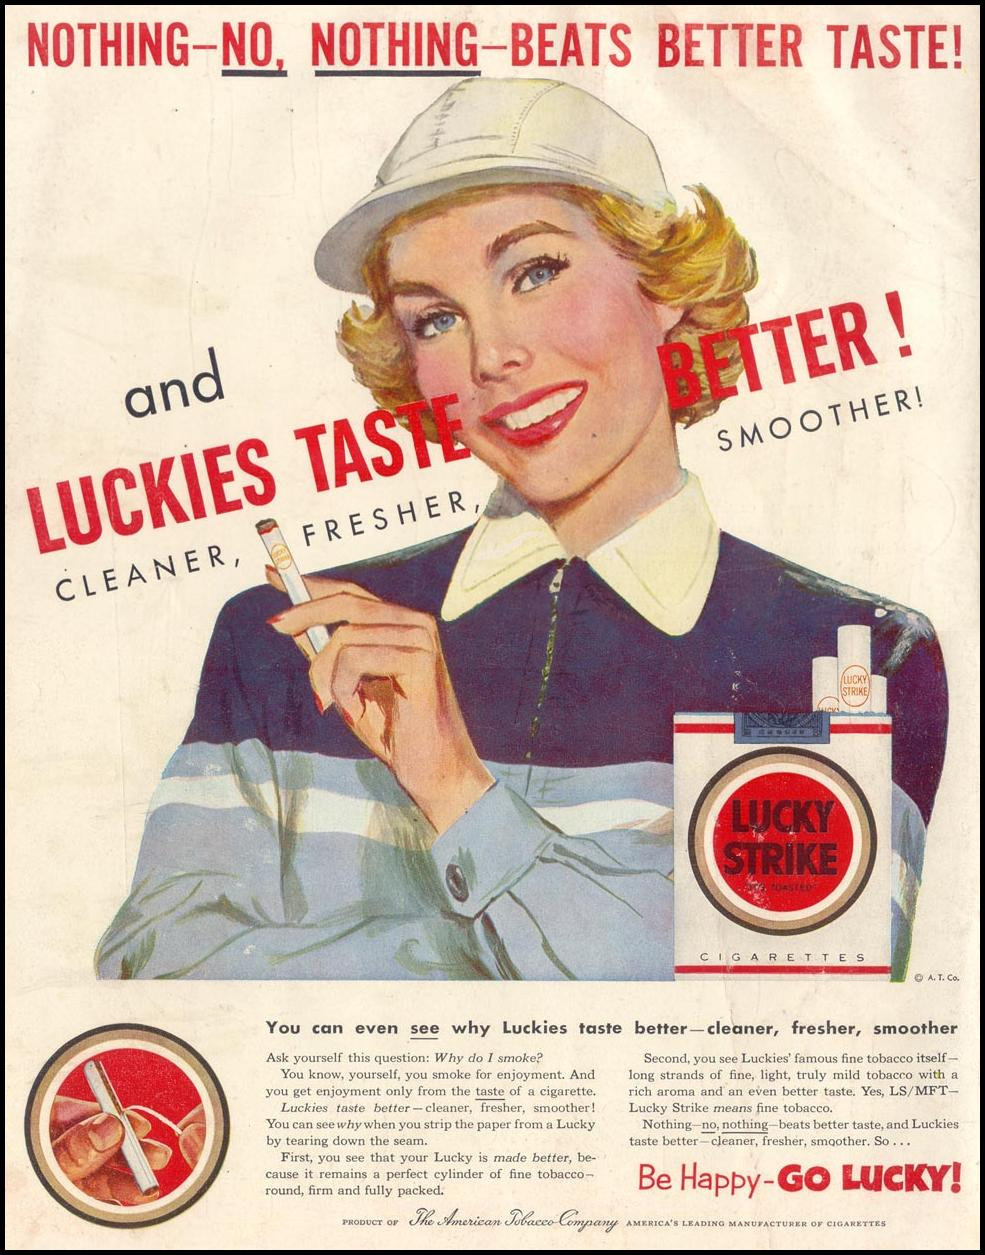 LUCKY STRIKE CIGARETTES LIFE 01/19/1953 BACK COVER